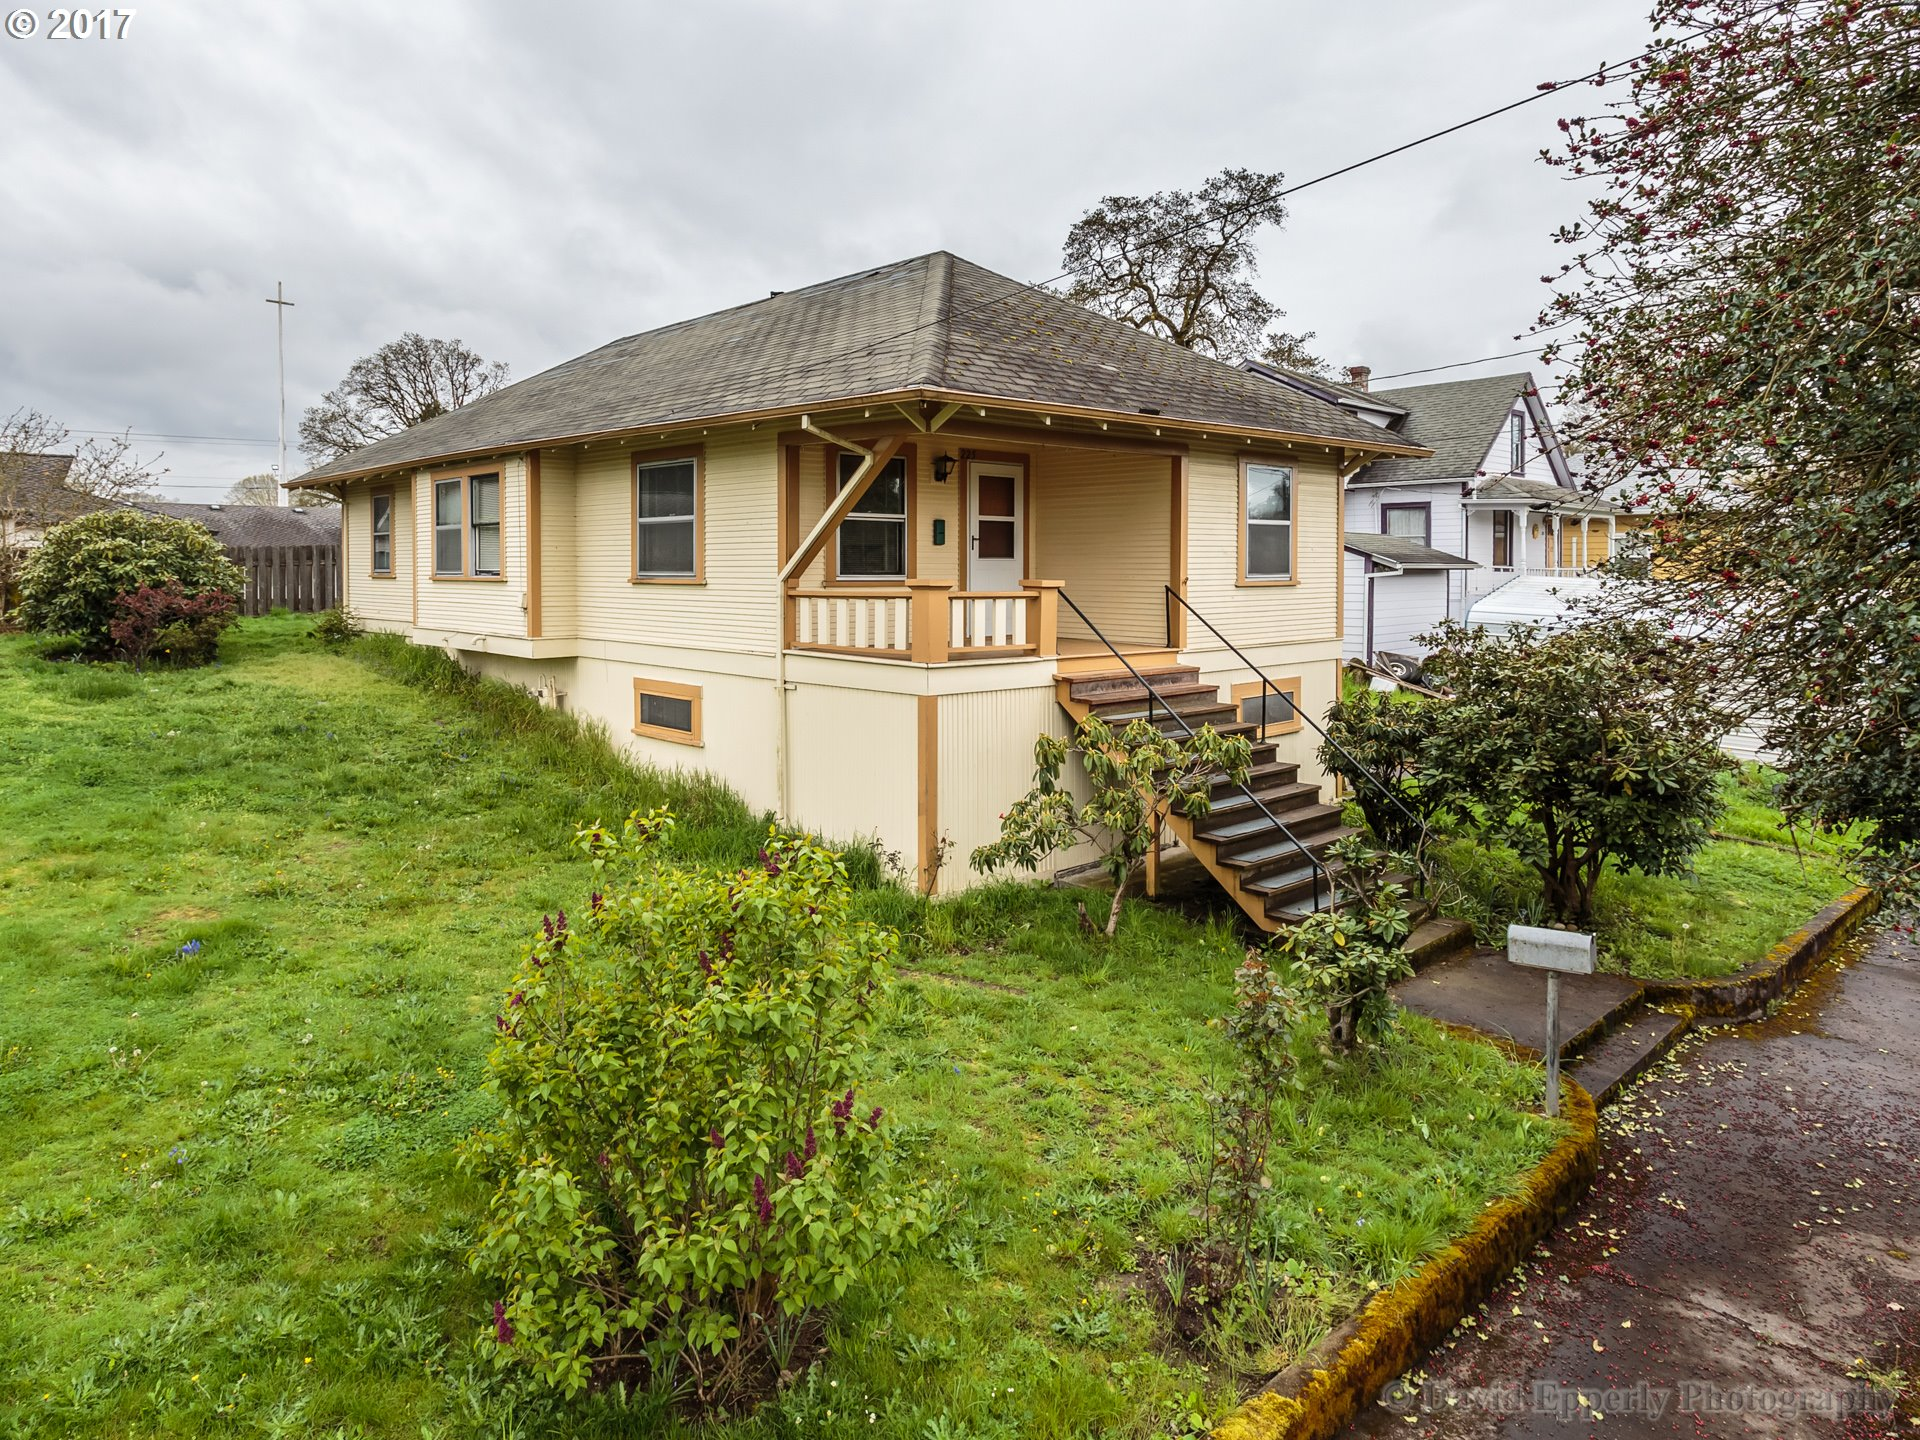 225 N 3RD ST, St. Helens, OR 97051